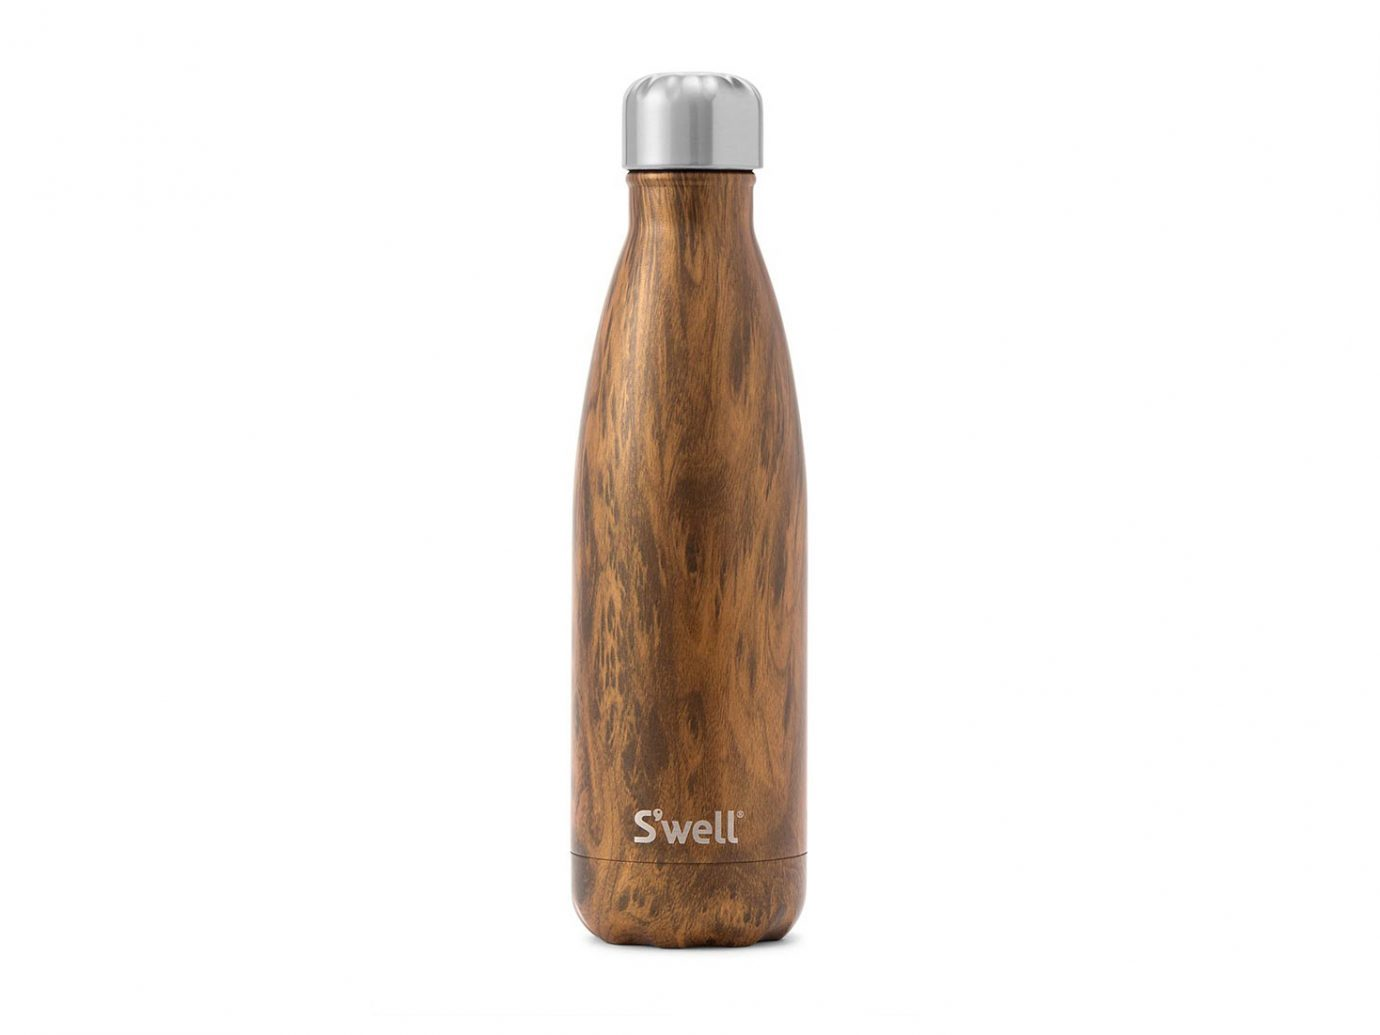 S'well 17oz Water Bottle